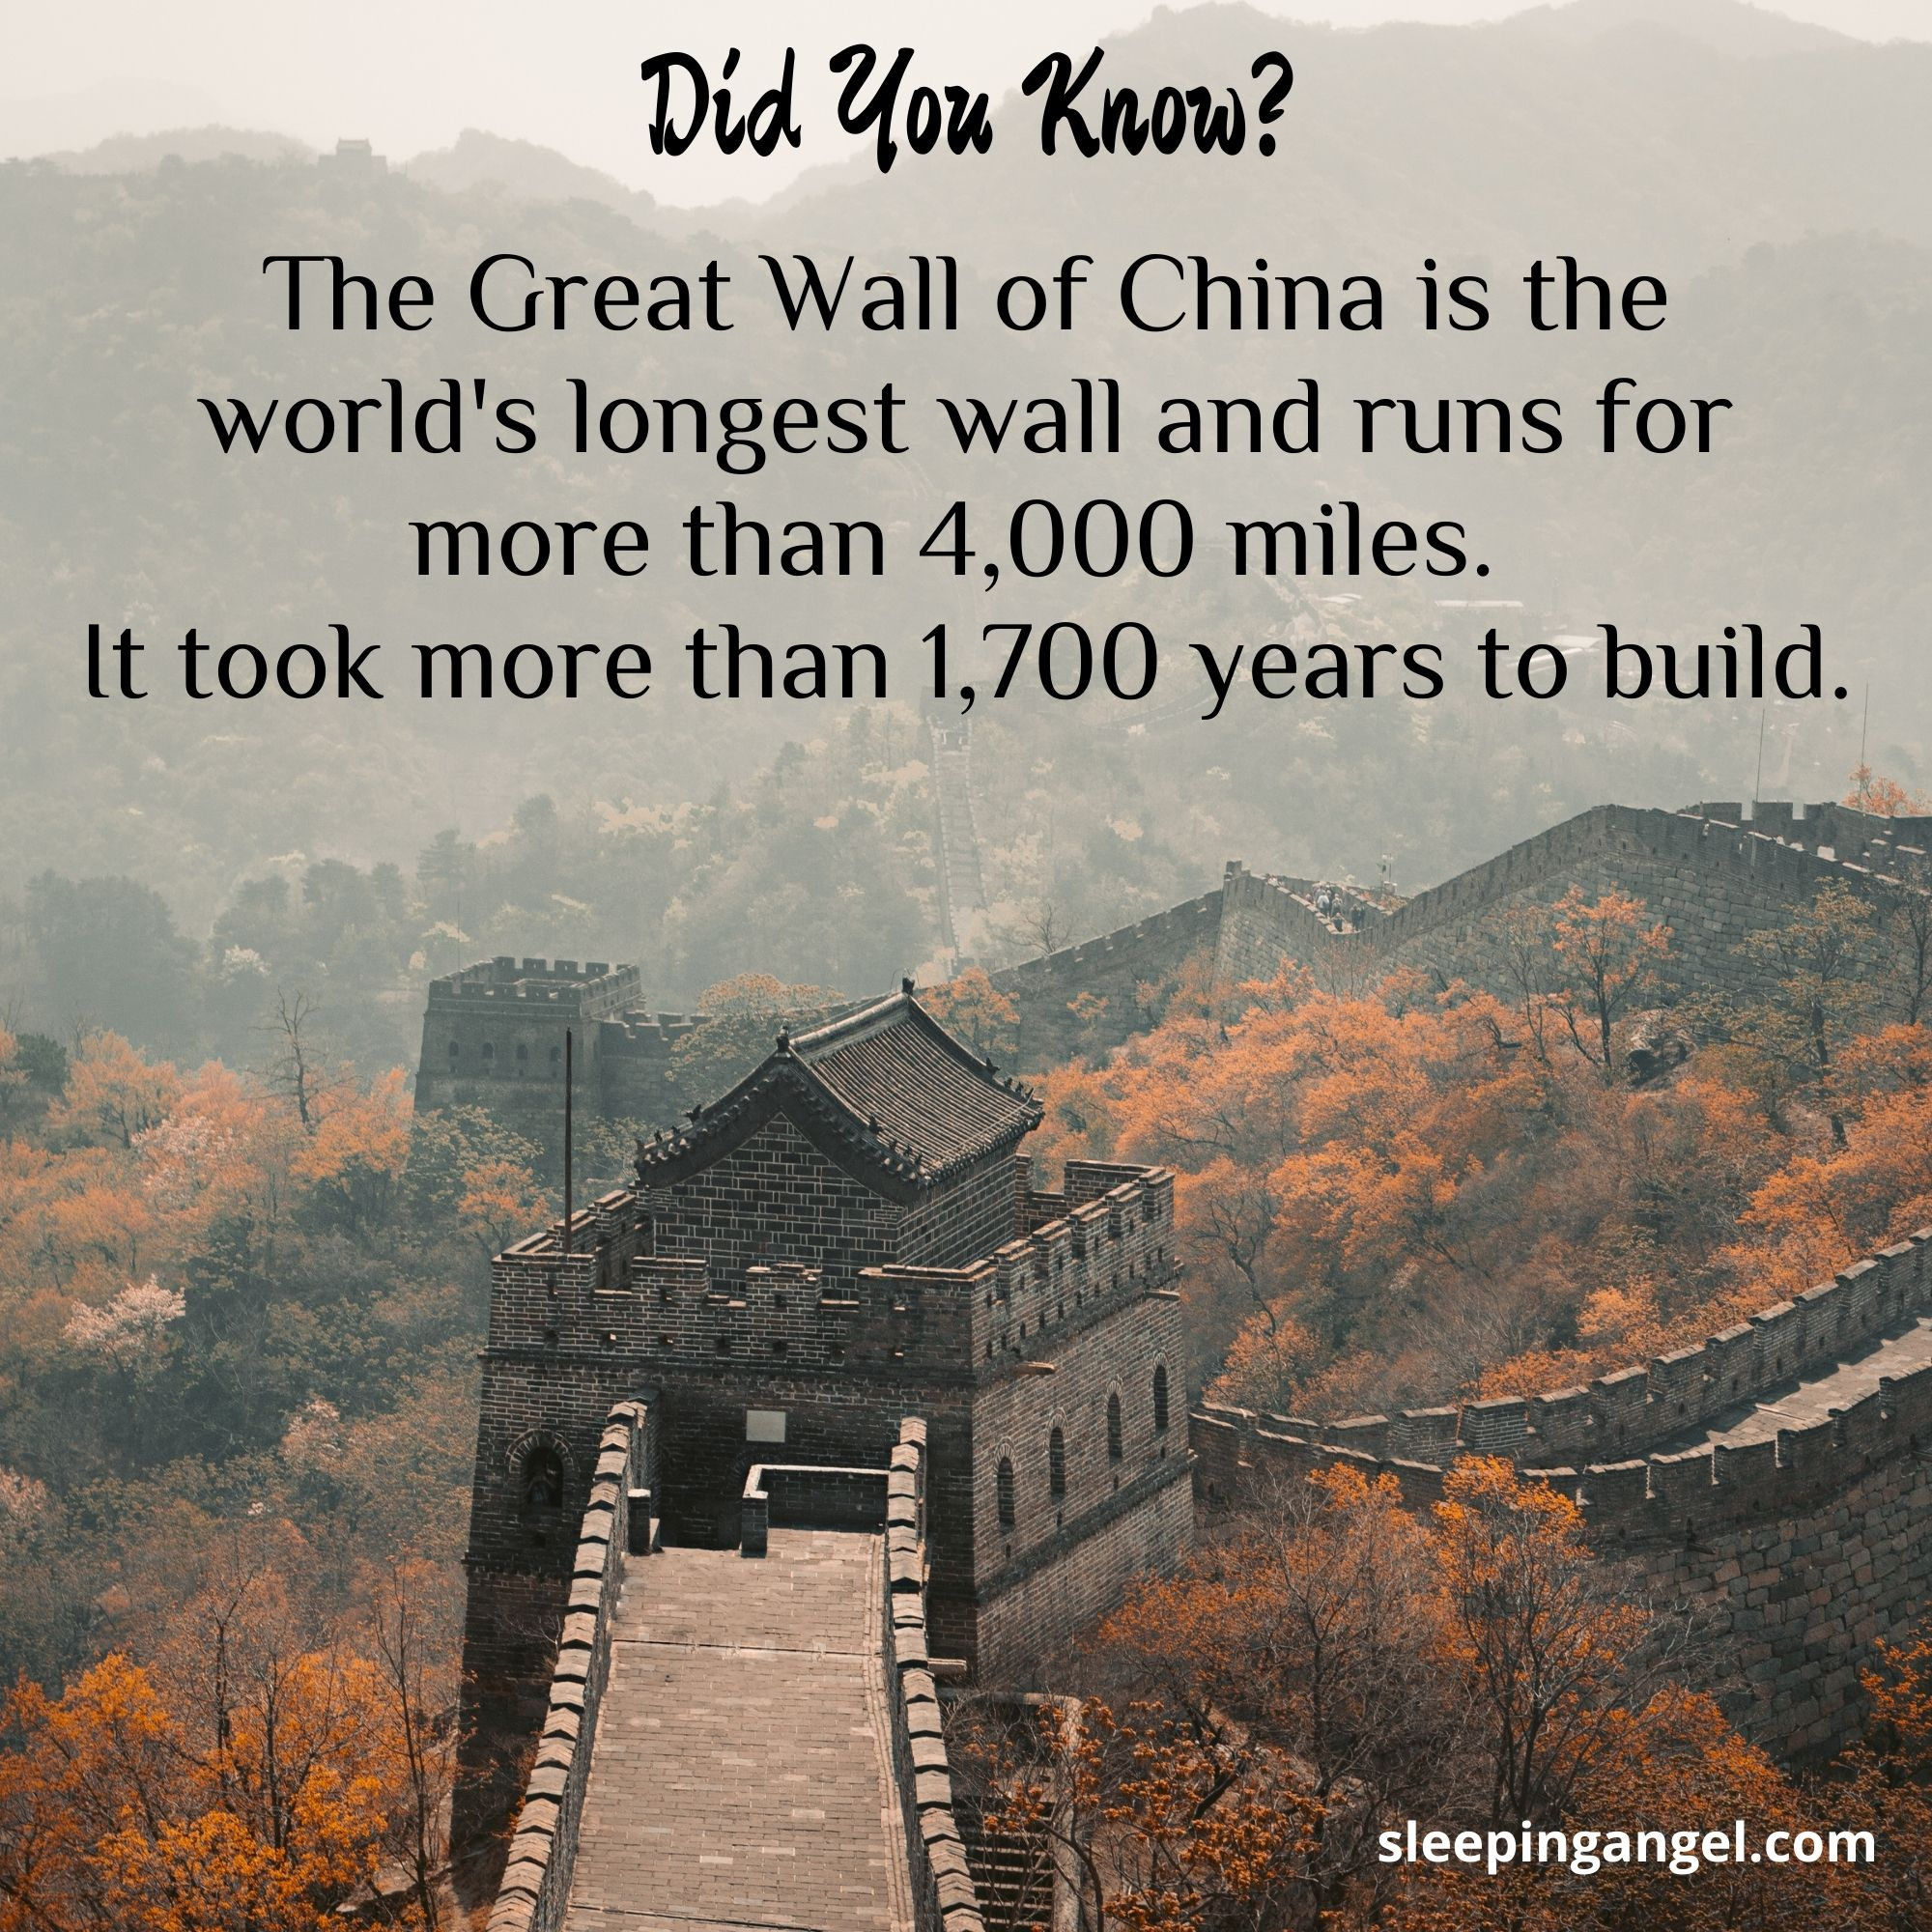 Did You Know? The Great Wall of China